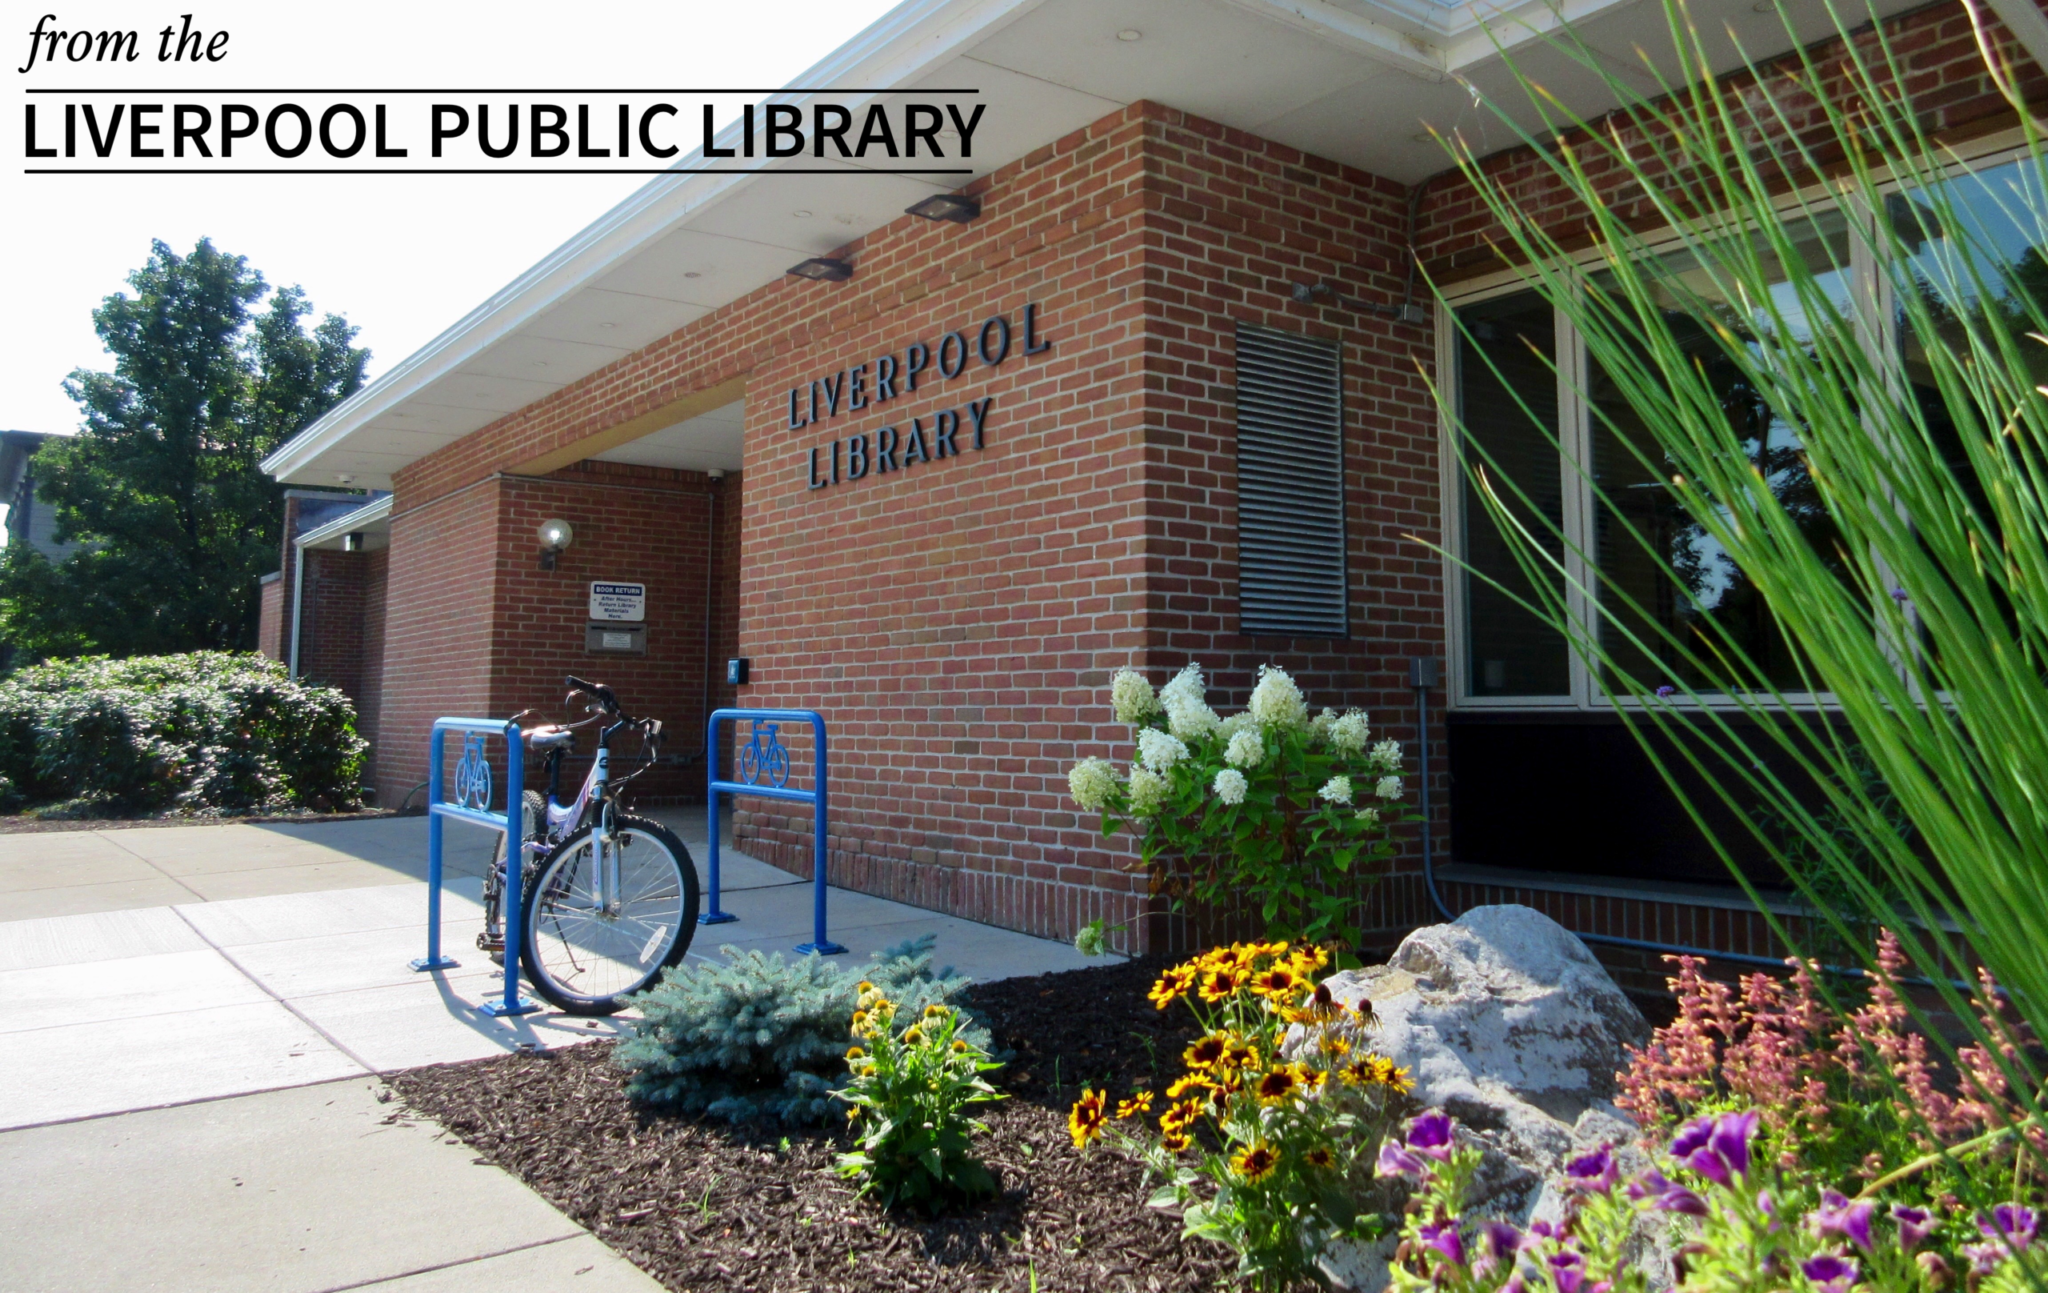 From the Liverpool Public Library: LPL builds new pavilion courtesy of Alfred W. Richberg Fund